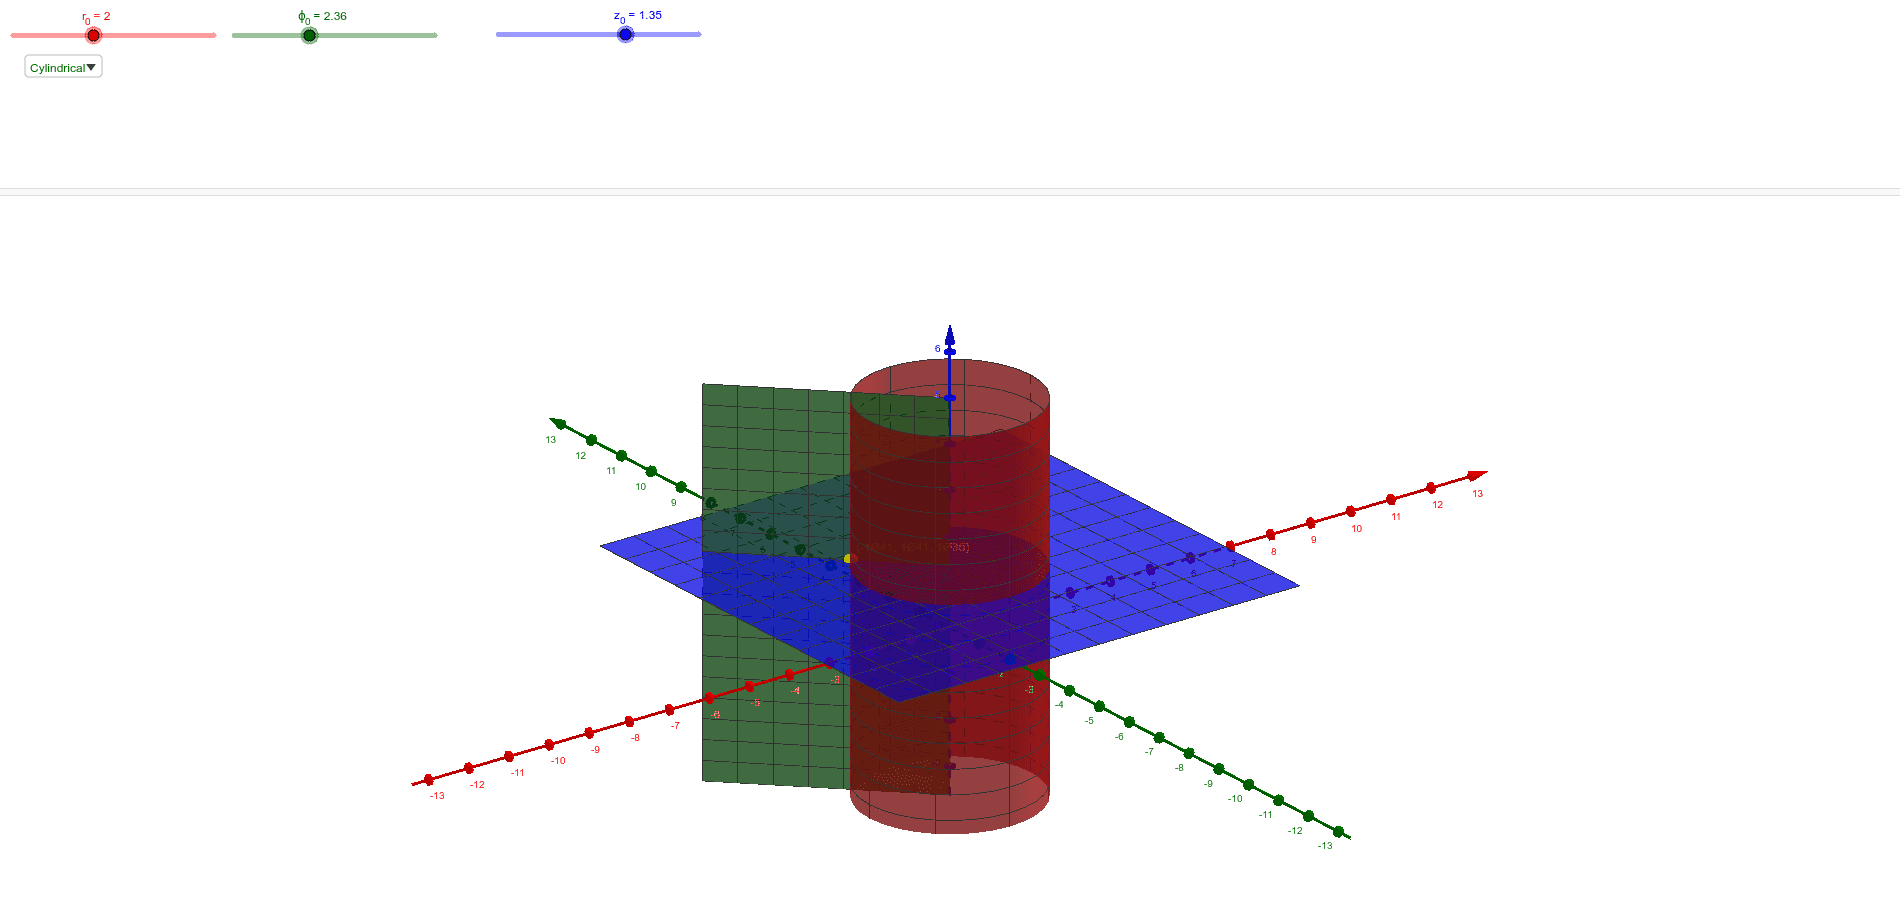 Constant surfaces in cartesian, cylindrical, and spherical coordinate systems